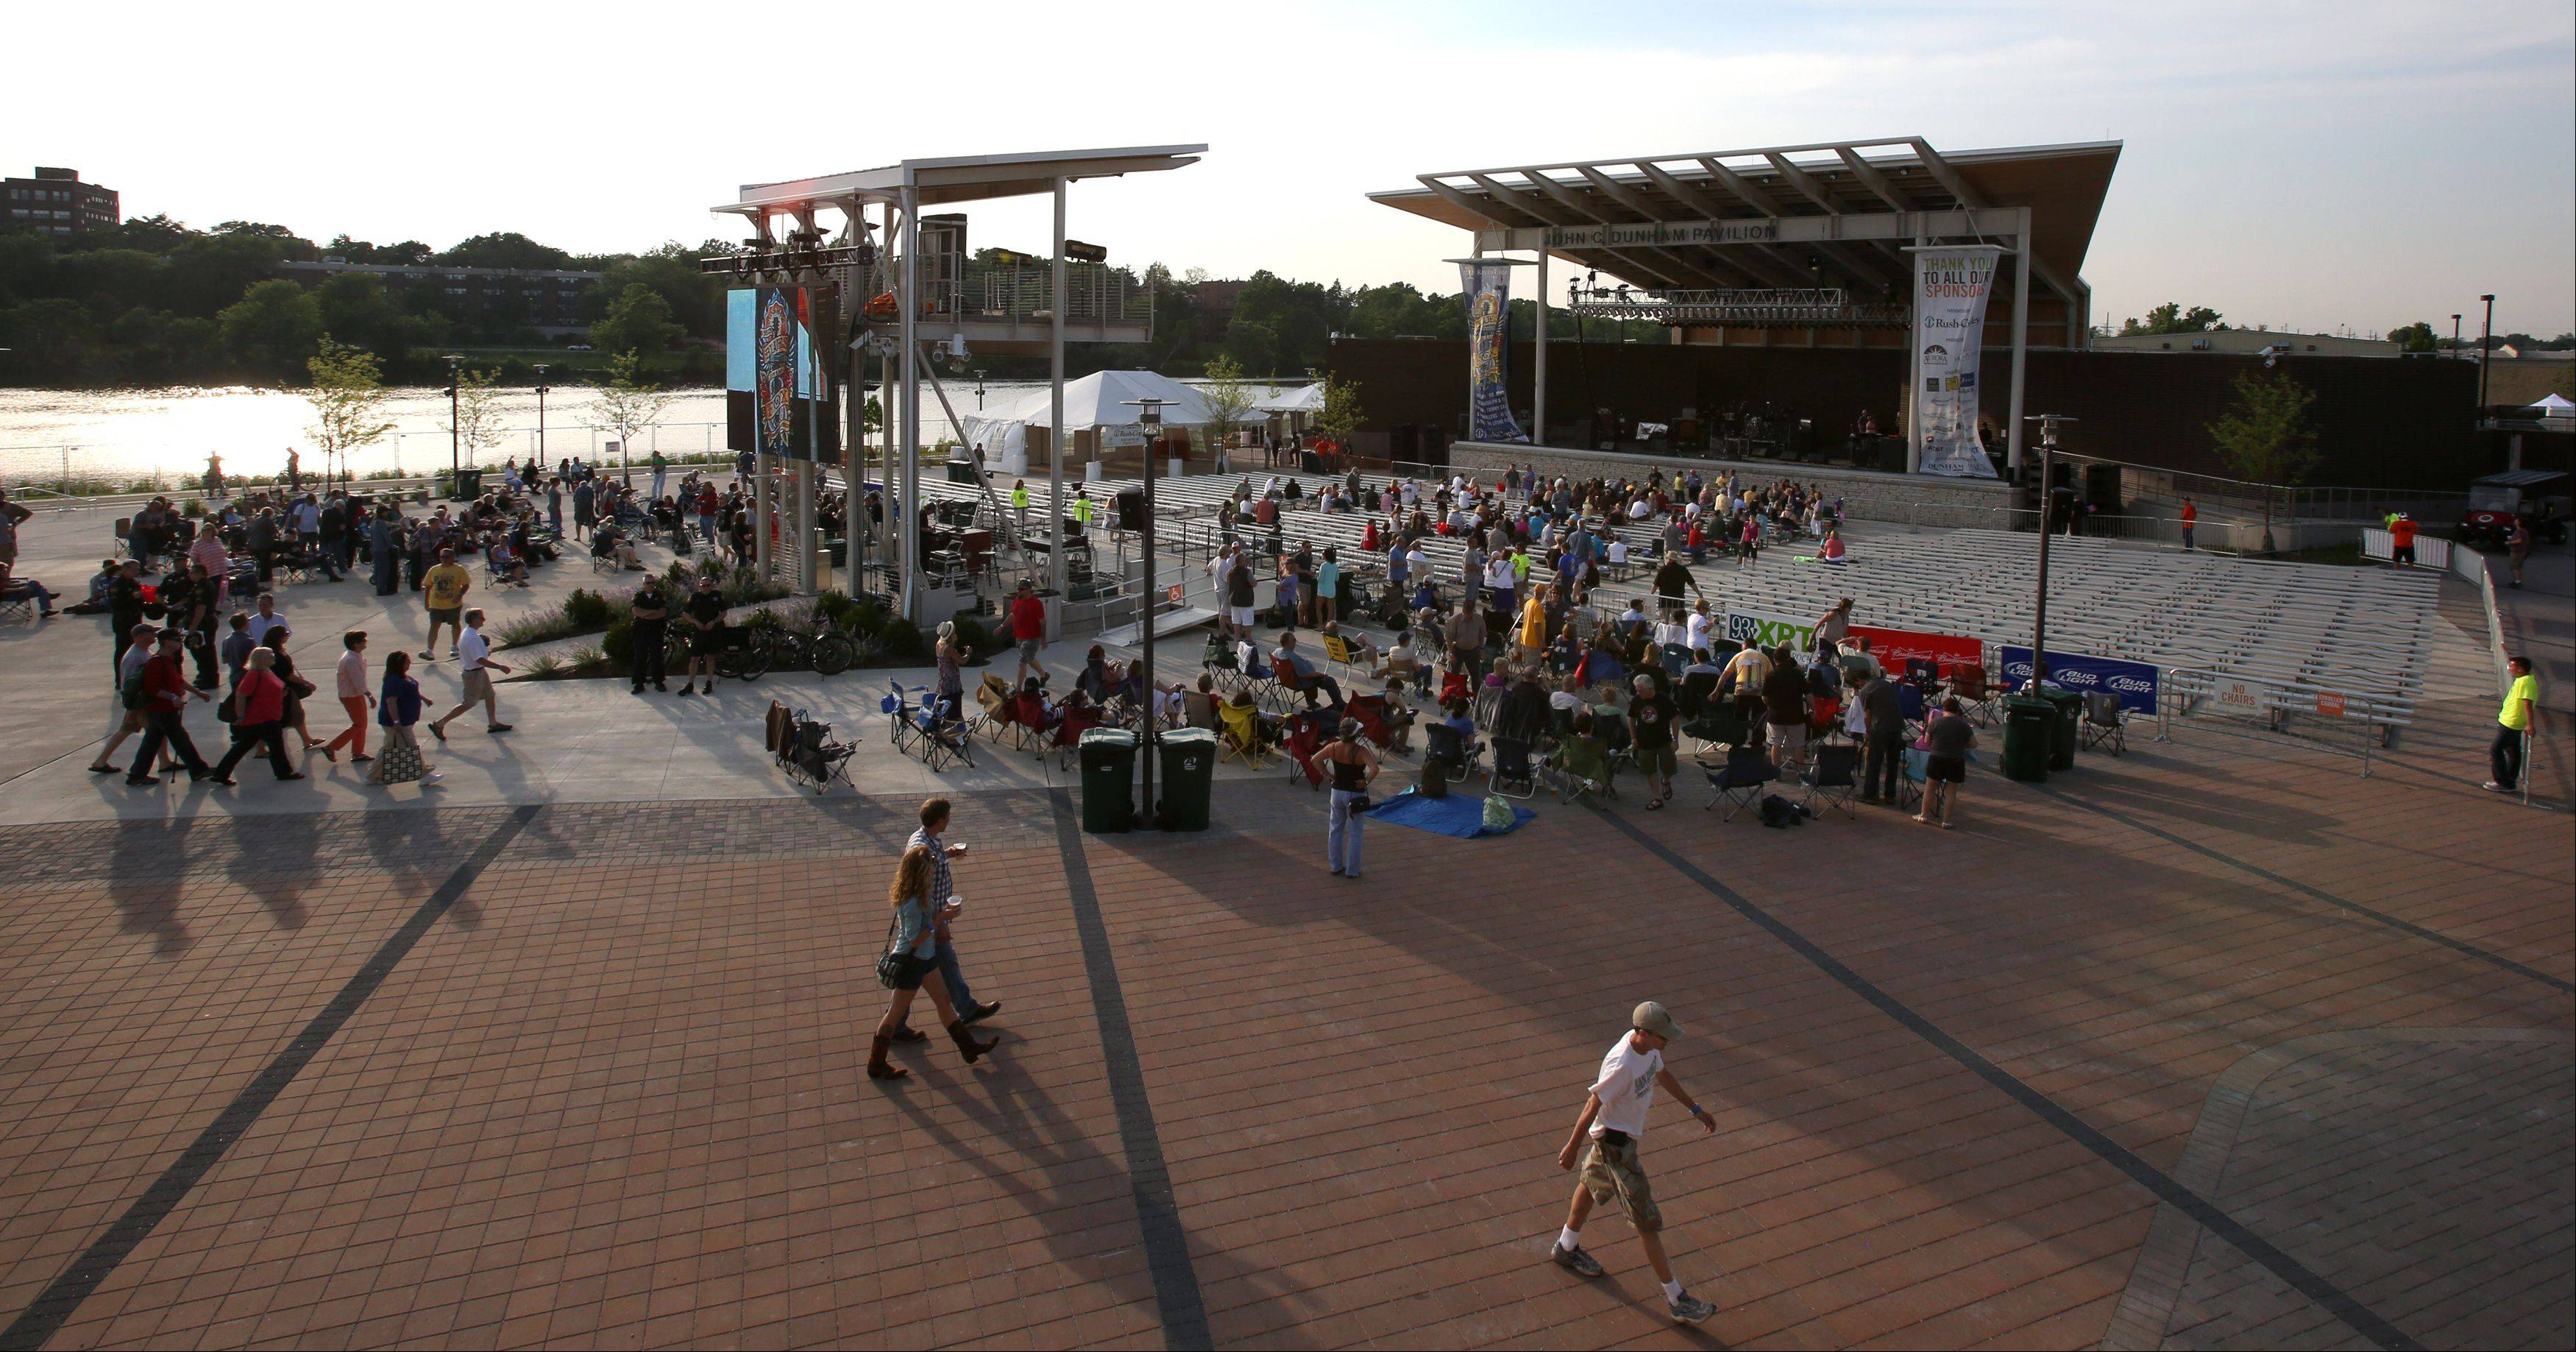 The crowd trickles in during the opening night of RiverEdge Park, coinciding with the 17th annual Blues on the Fox festival.